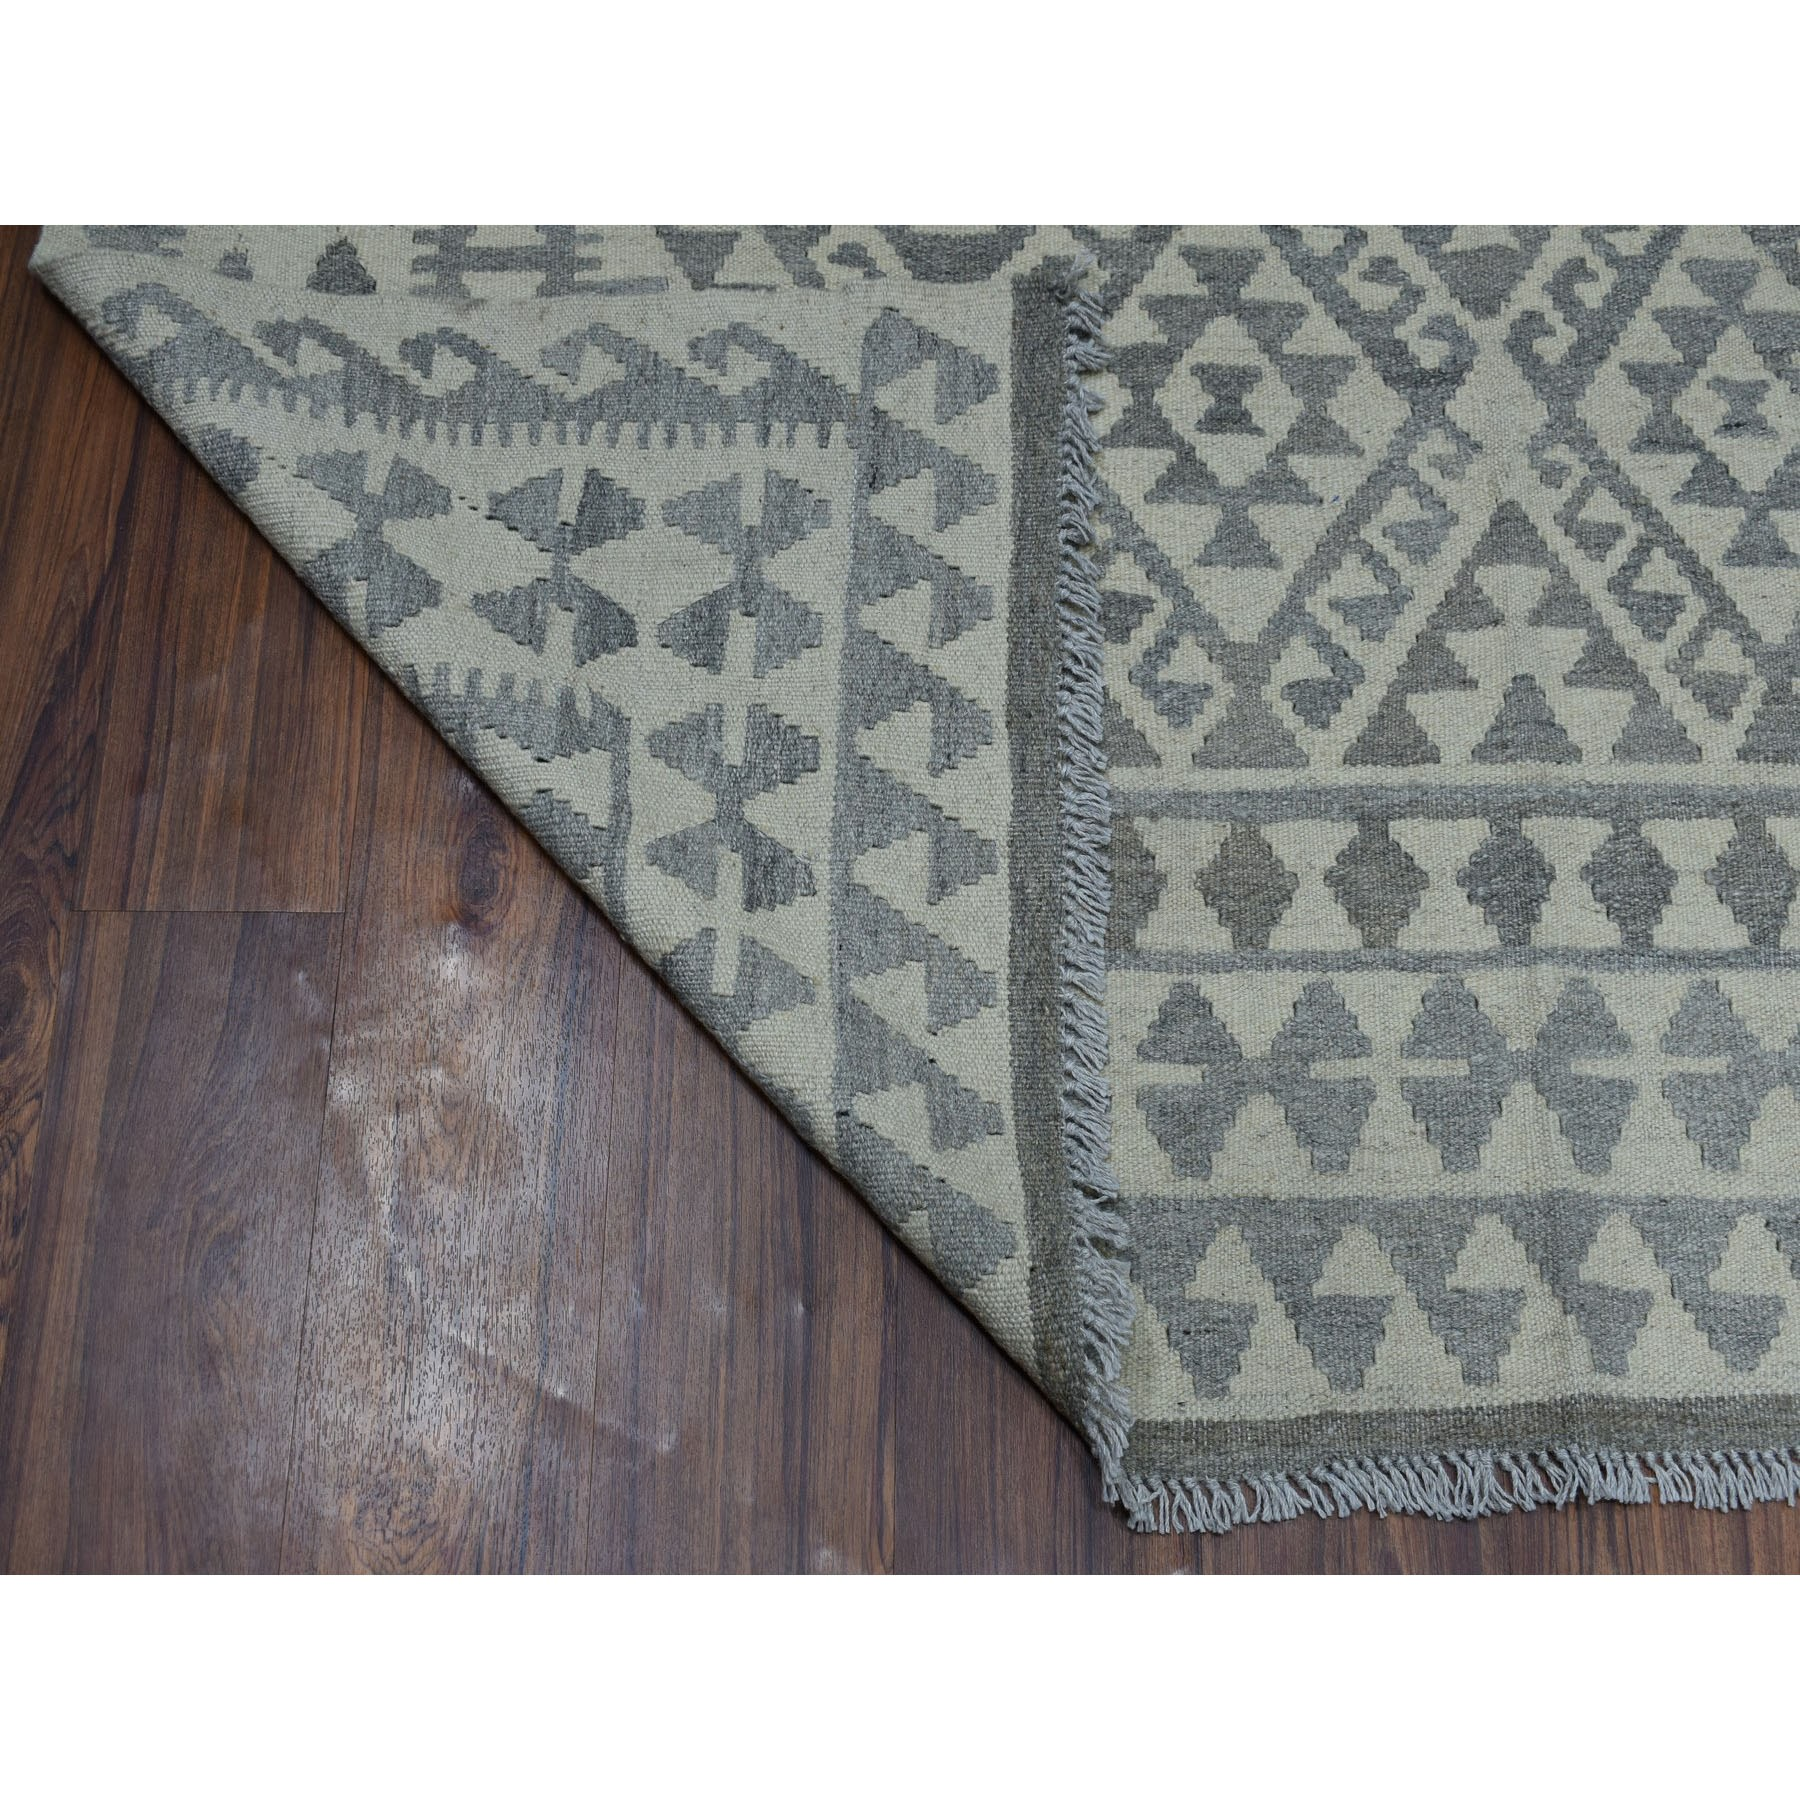 5-10 x8- Undyed Natural Wool Afghan Kilim Reversible Hand Woven Oriental Rug